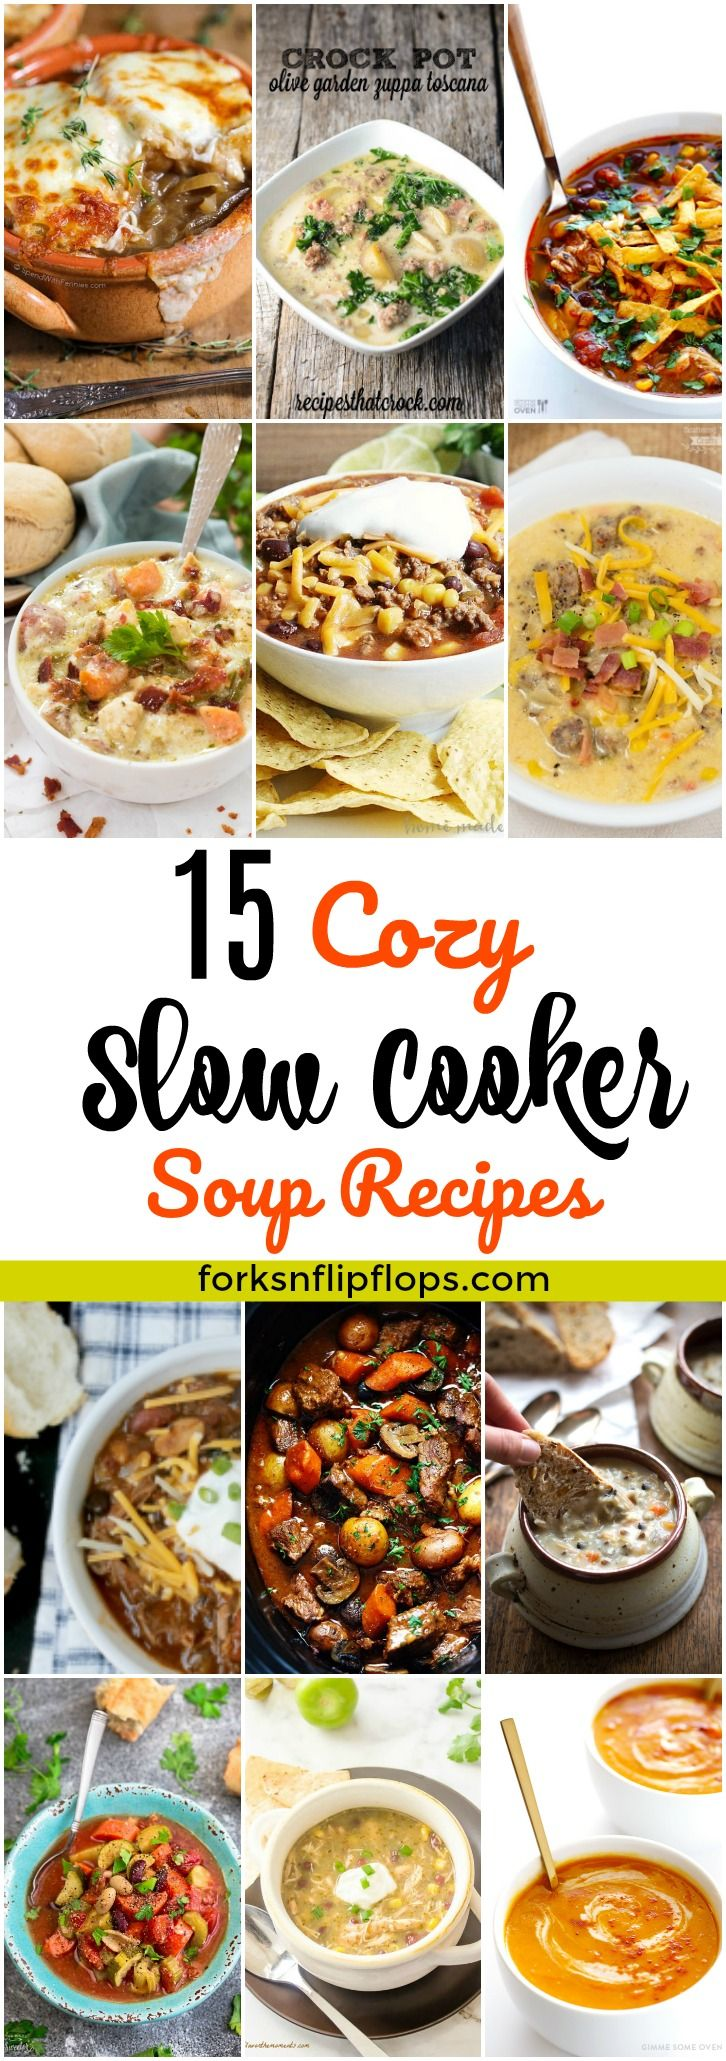 A roundup of delicious slow cooker soup recipes to keep you warm during the chilly months. I've scoured the internet in search of the 15 Best Crockpot Soup Recipes that you must try! Its a mix of hearty and healthy soups.